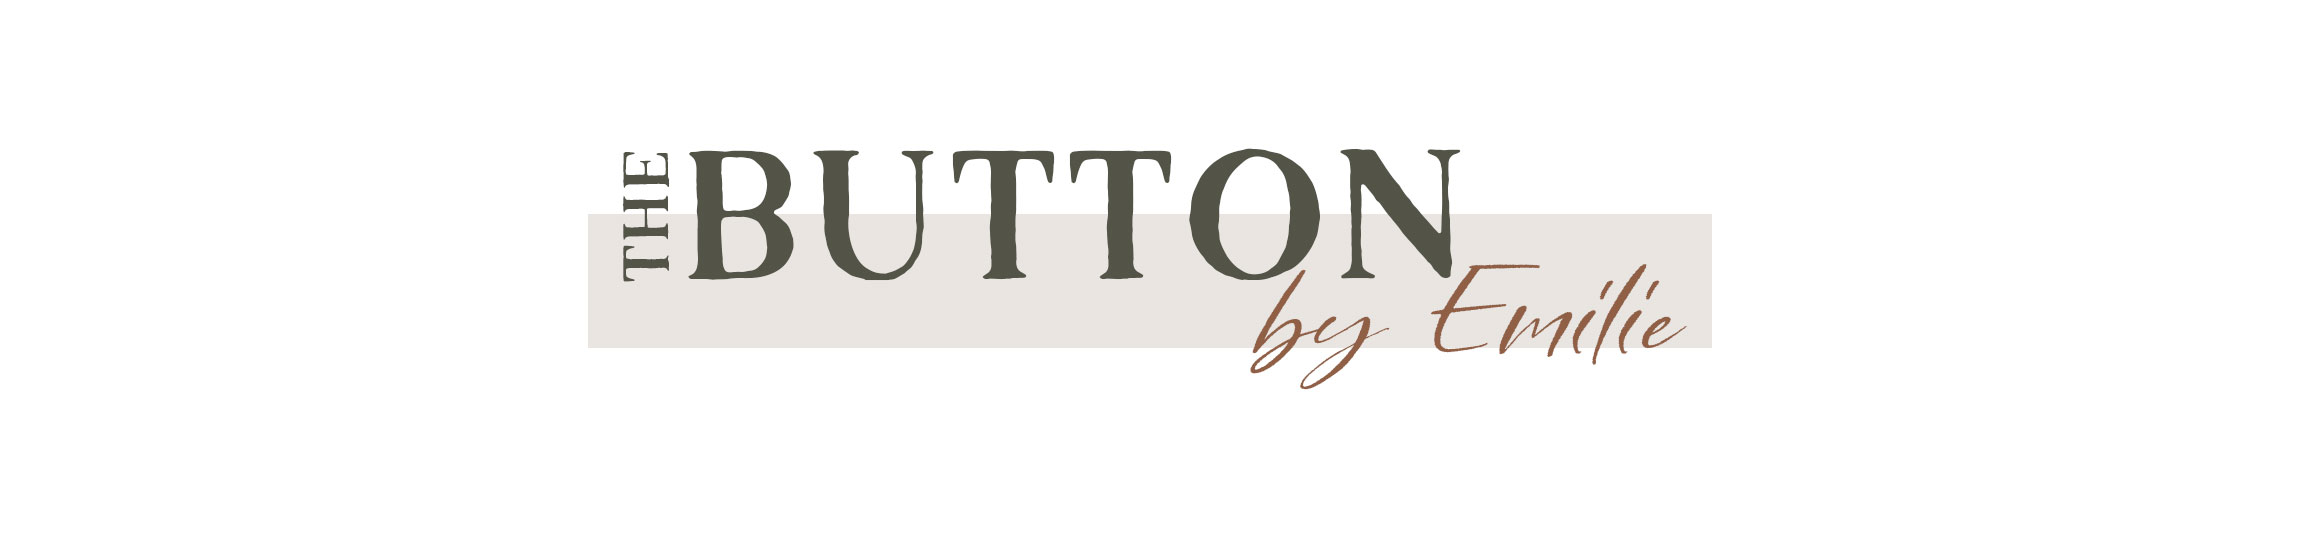 THE BUTTON by Emilie